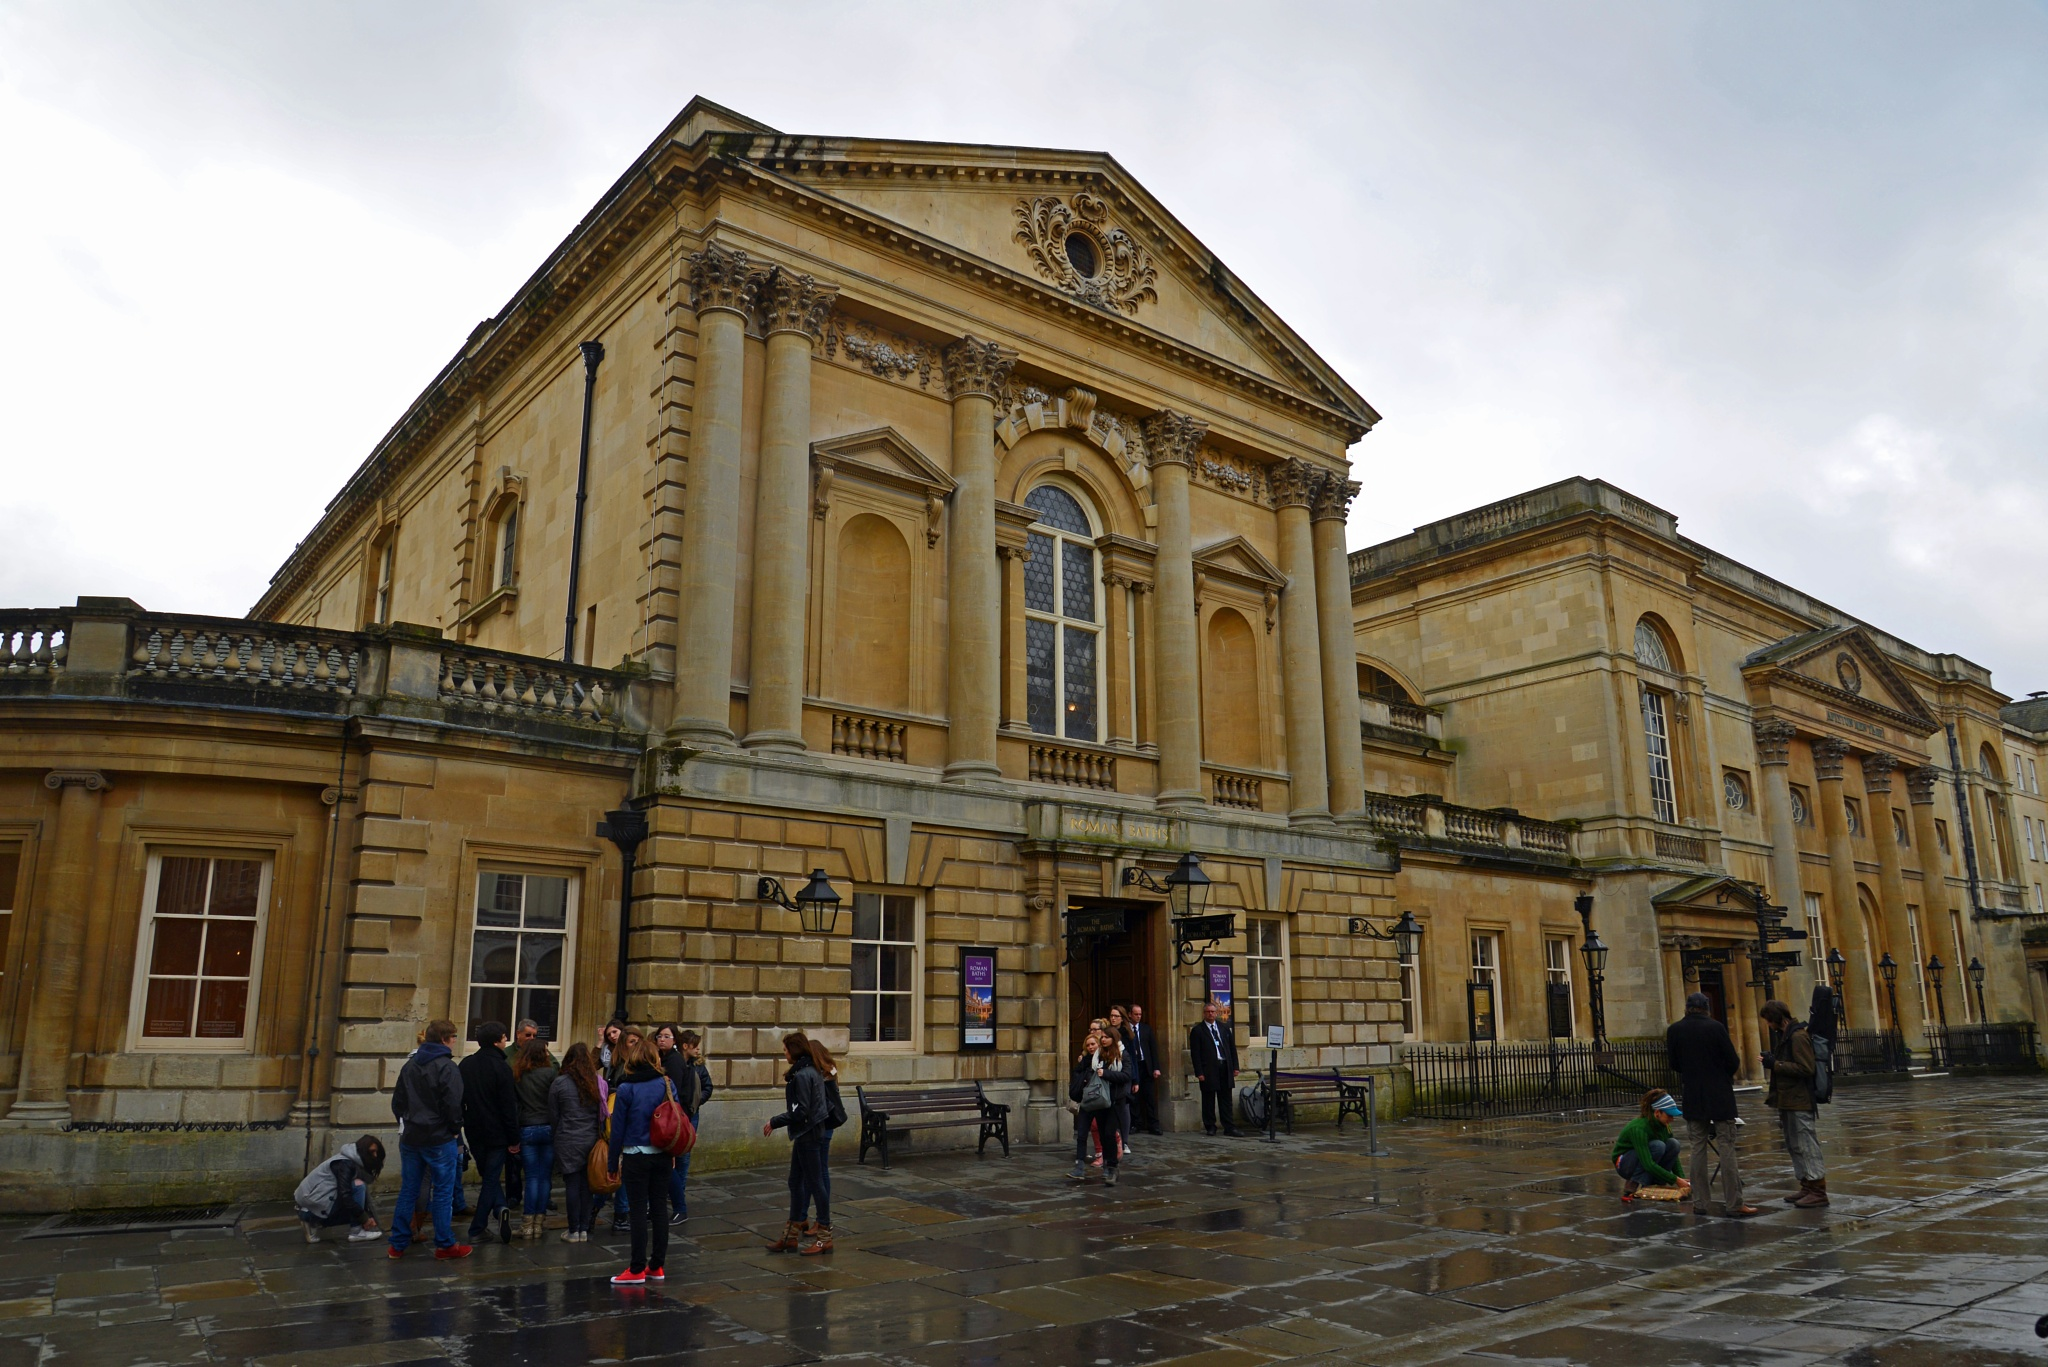 Bath's Roman History, 1. by jamez